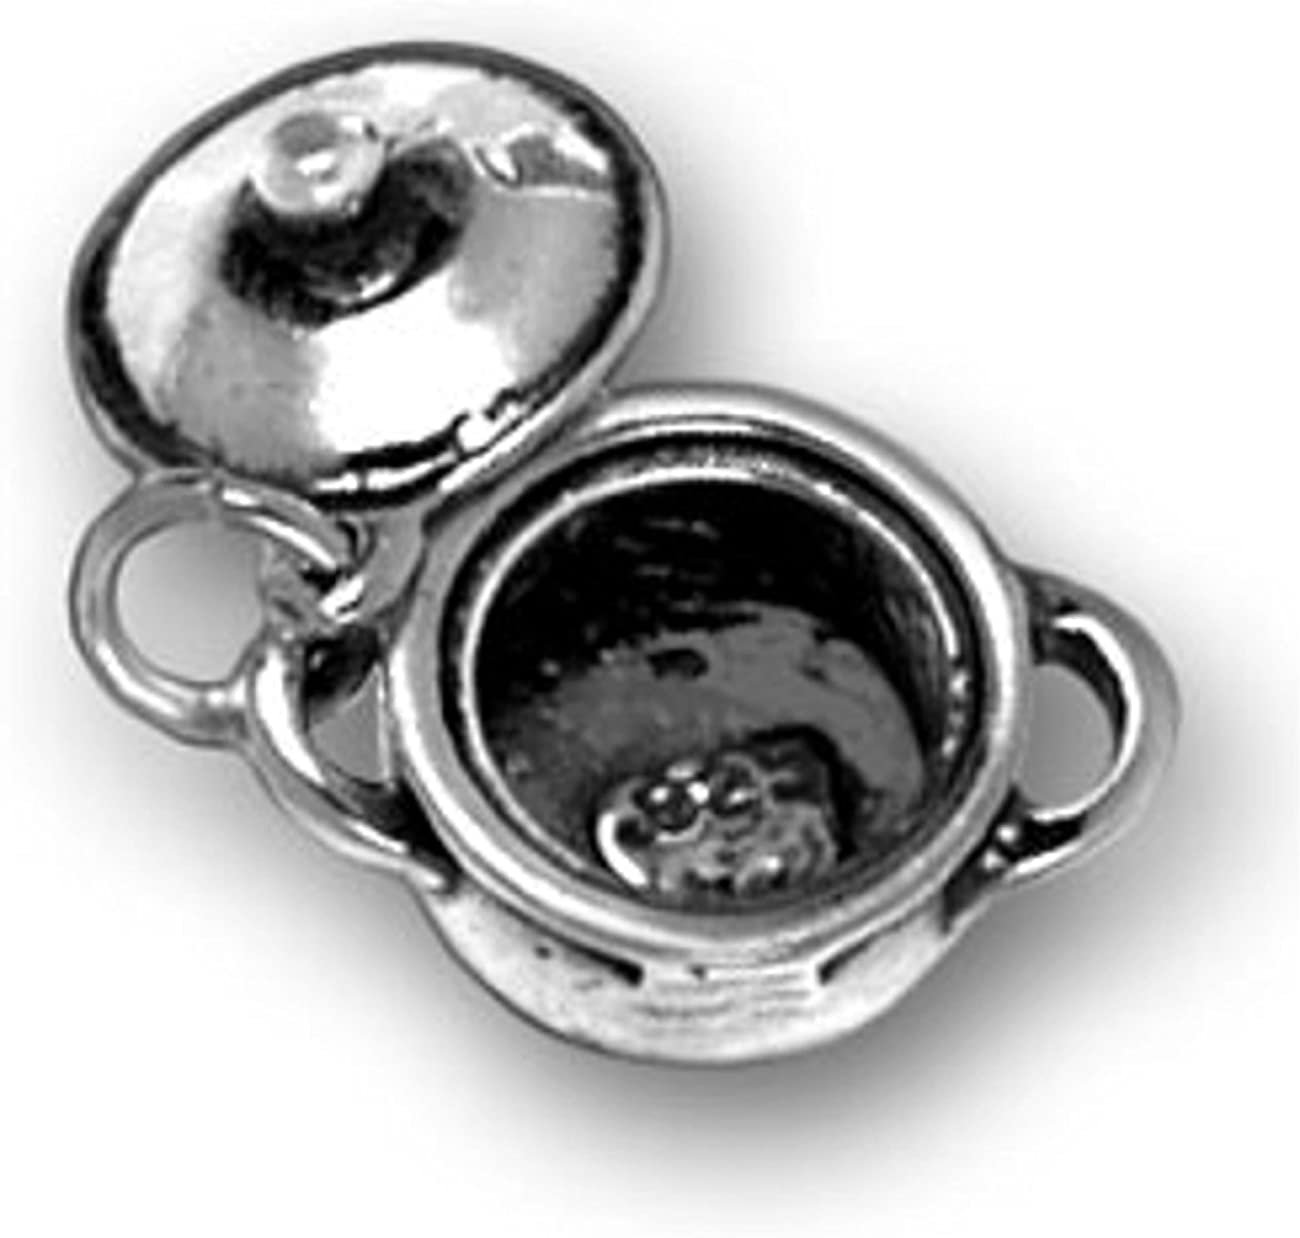 Sterling Silver 7 4.5mm Charm Bracelet With Attached 3D Kitchen Cooks Iron Kettle Cooking Charm